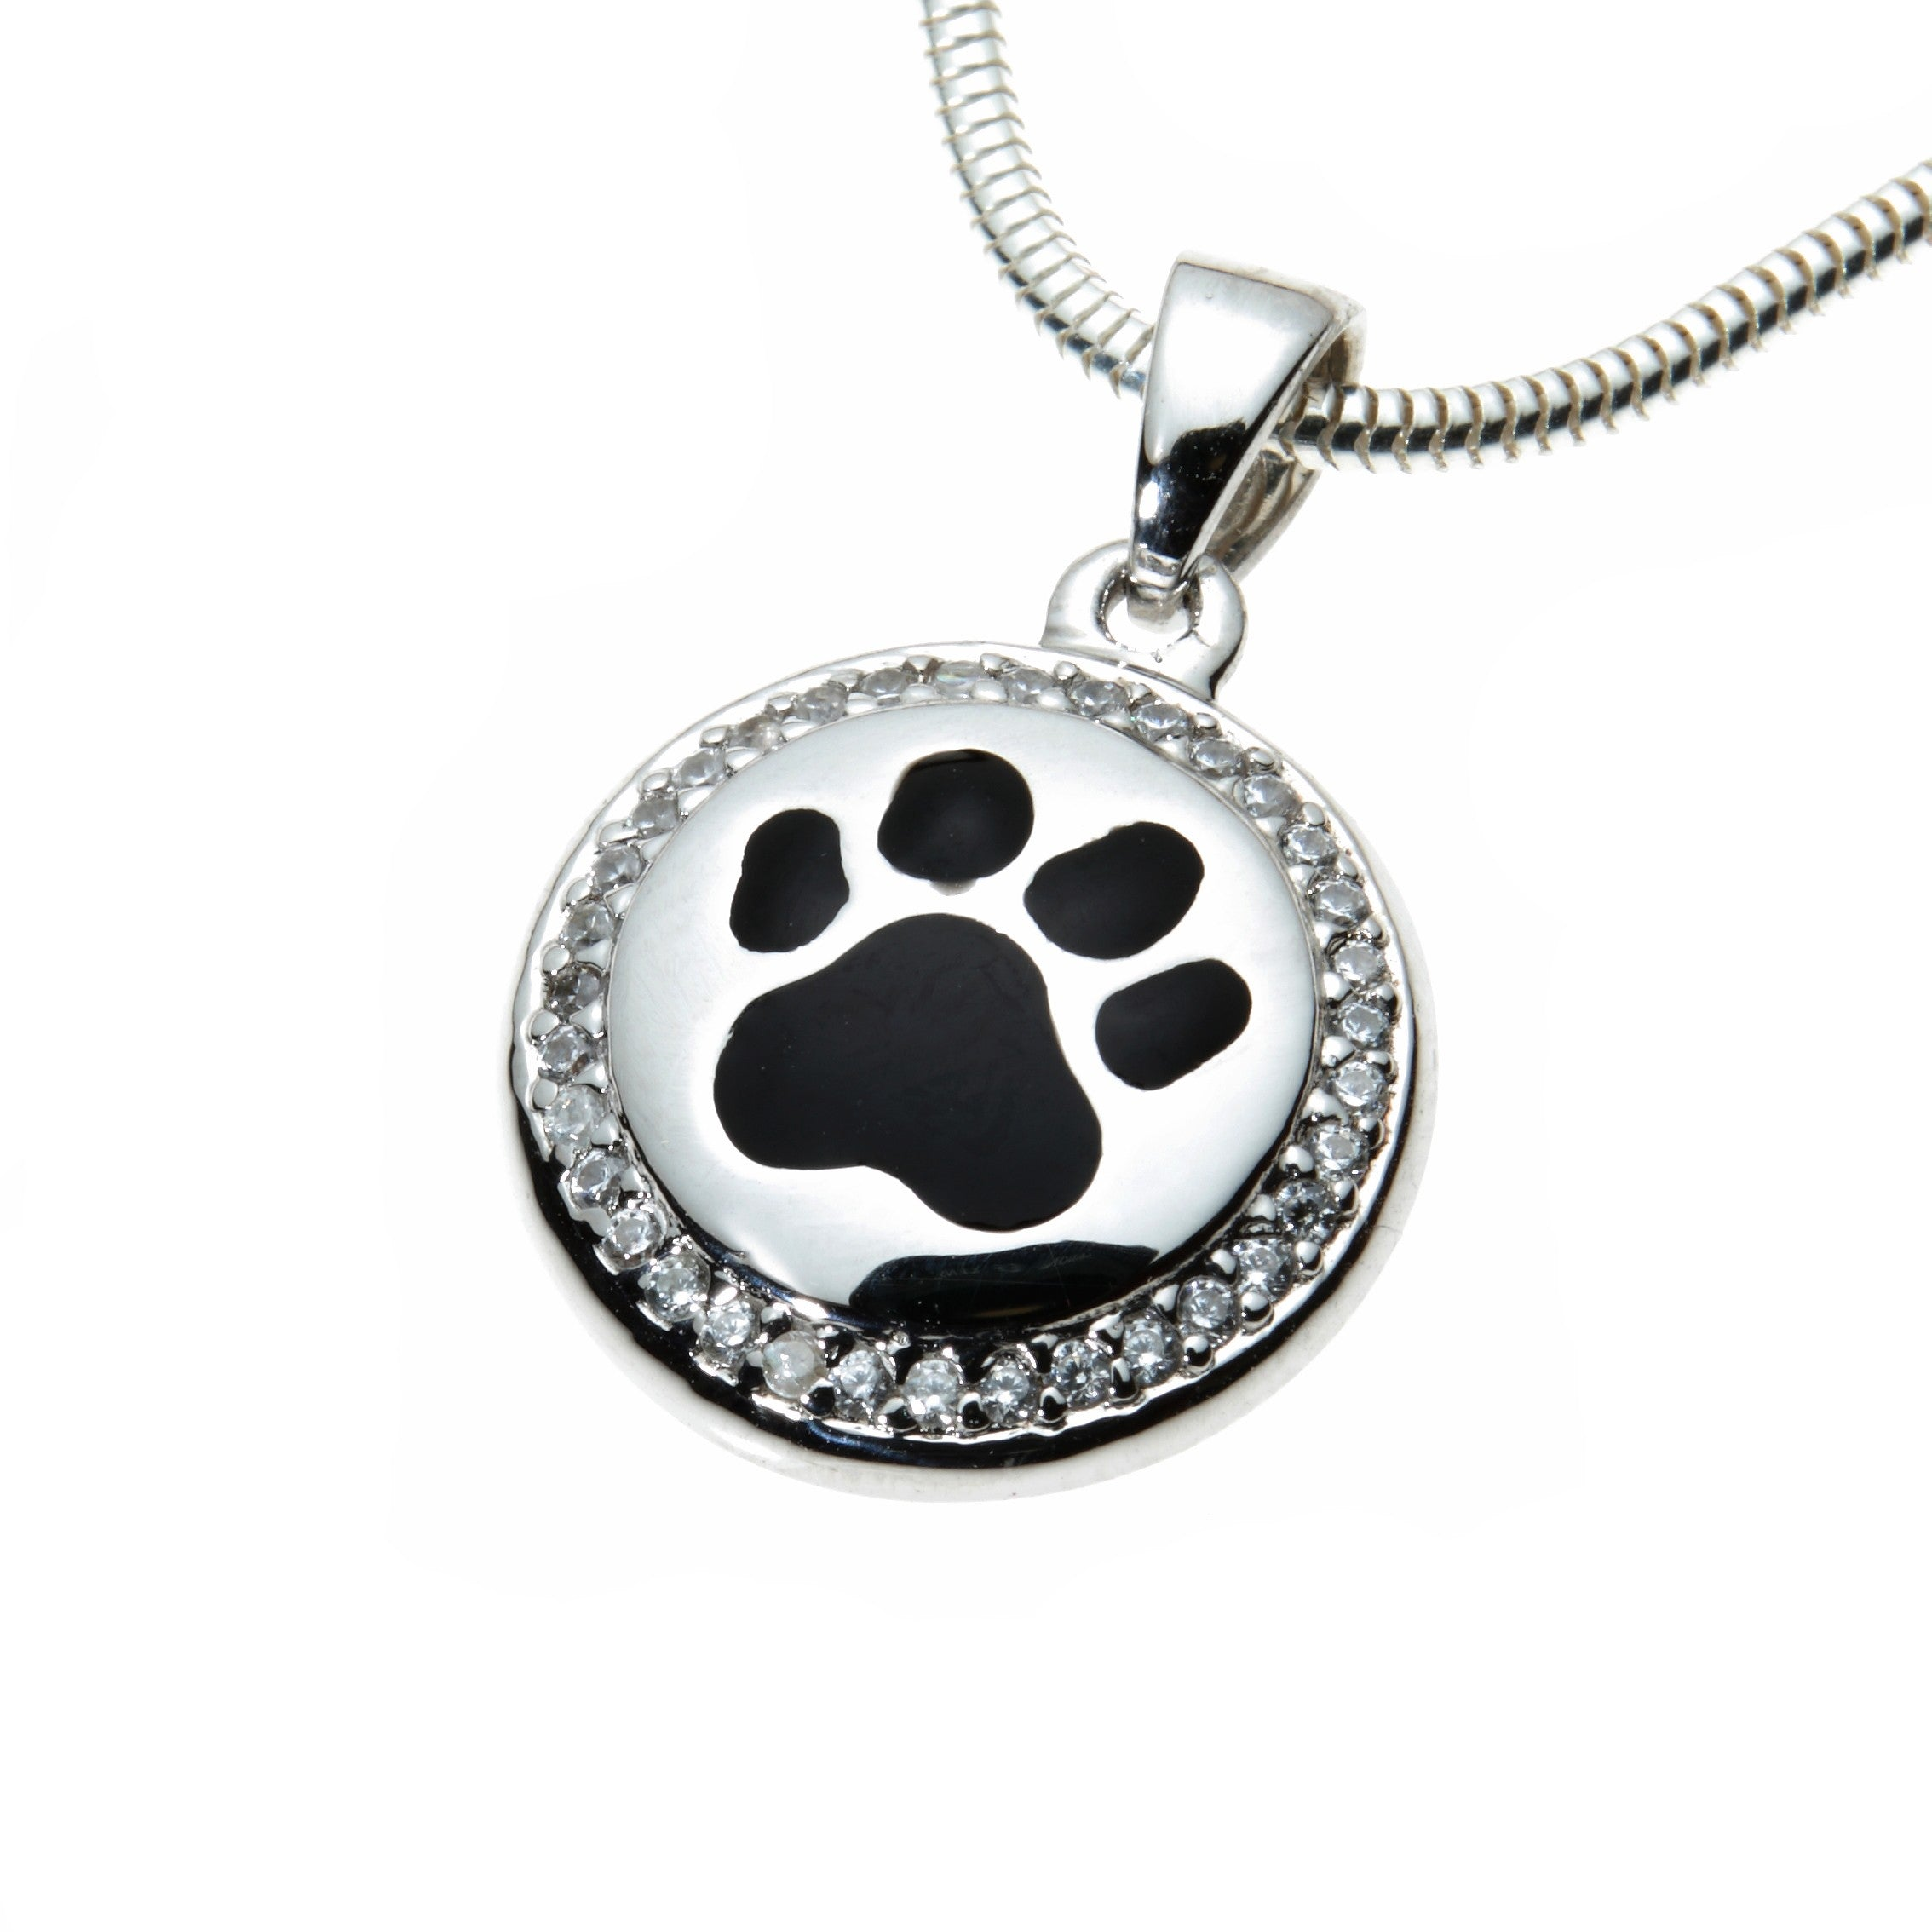 Ashes Infused Jewellery - Remember our Pets